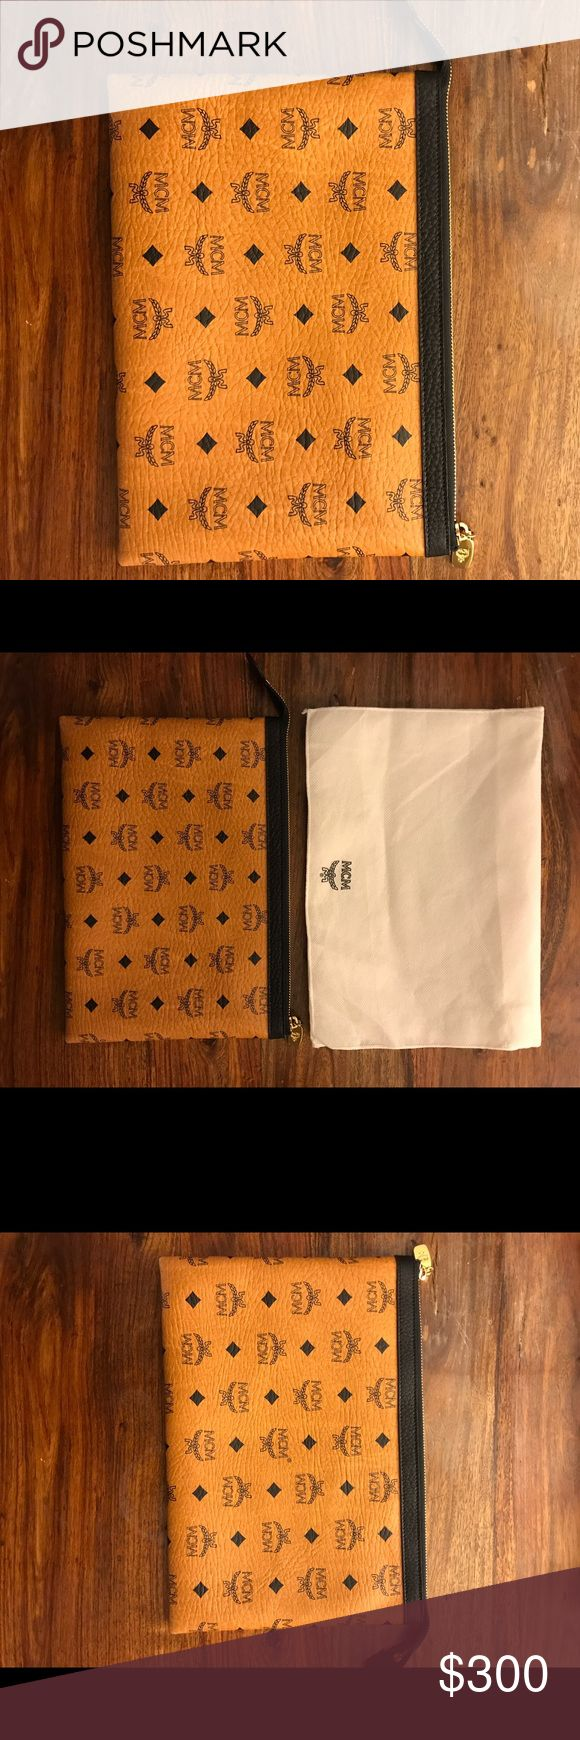 MCM NEW Clutch Only worn once. Black and brown clutch. With dust bag. No signs of wear. Price is firm. No lowball offers please. MCM Bags Clutches & Wristlets